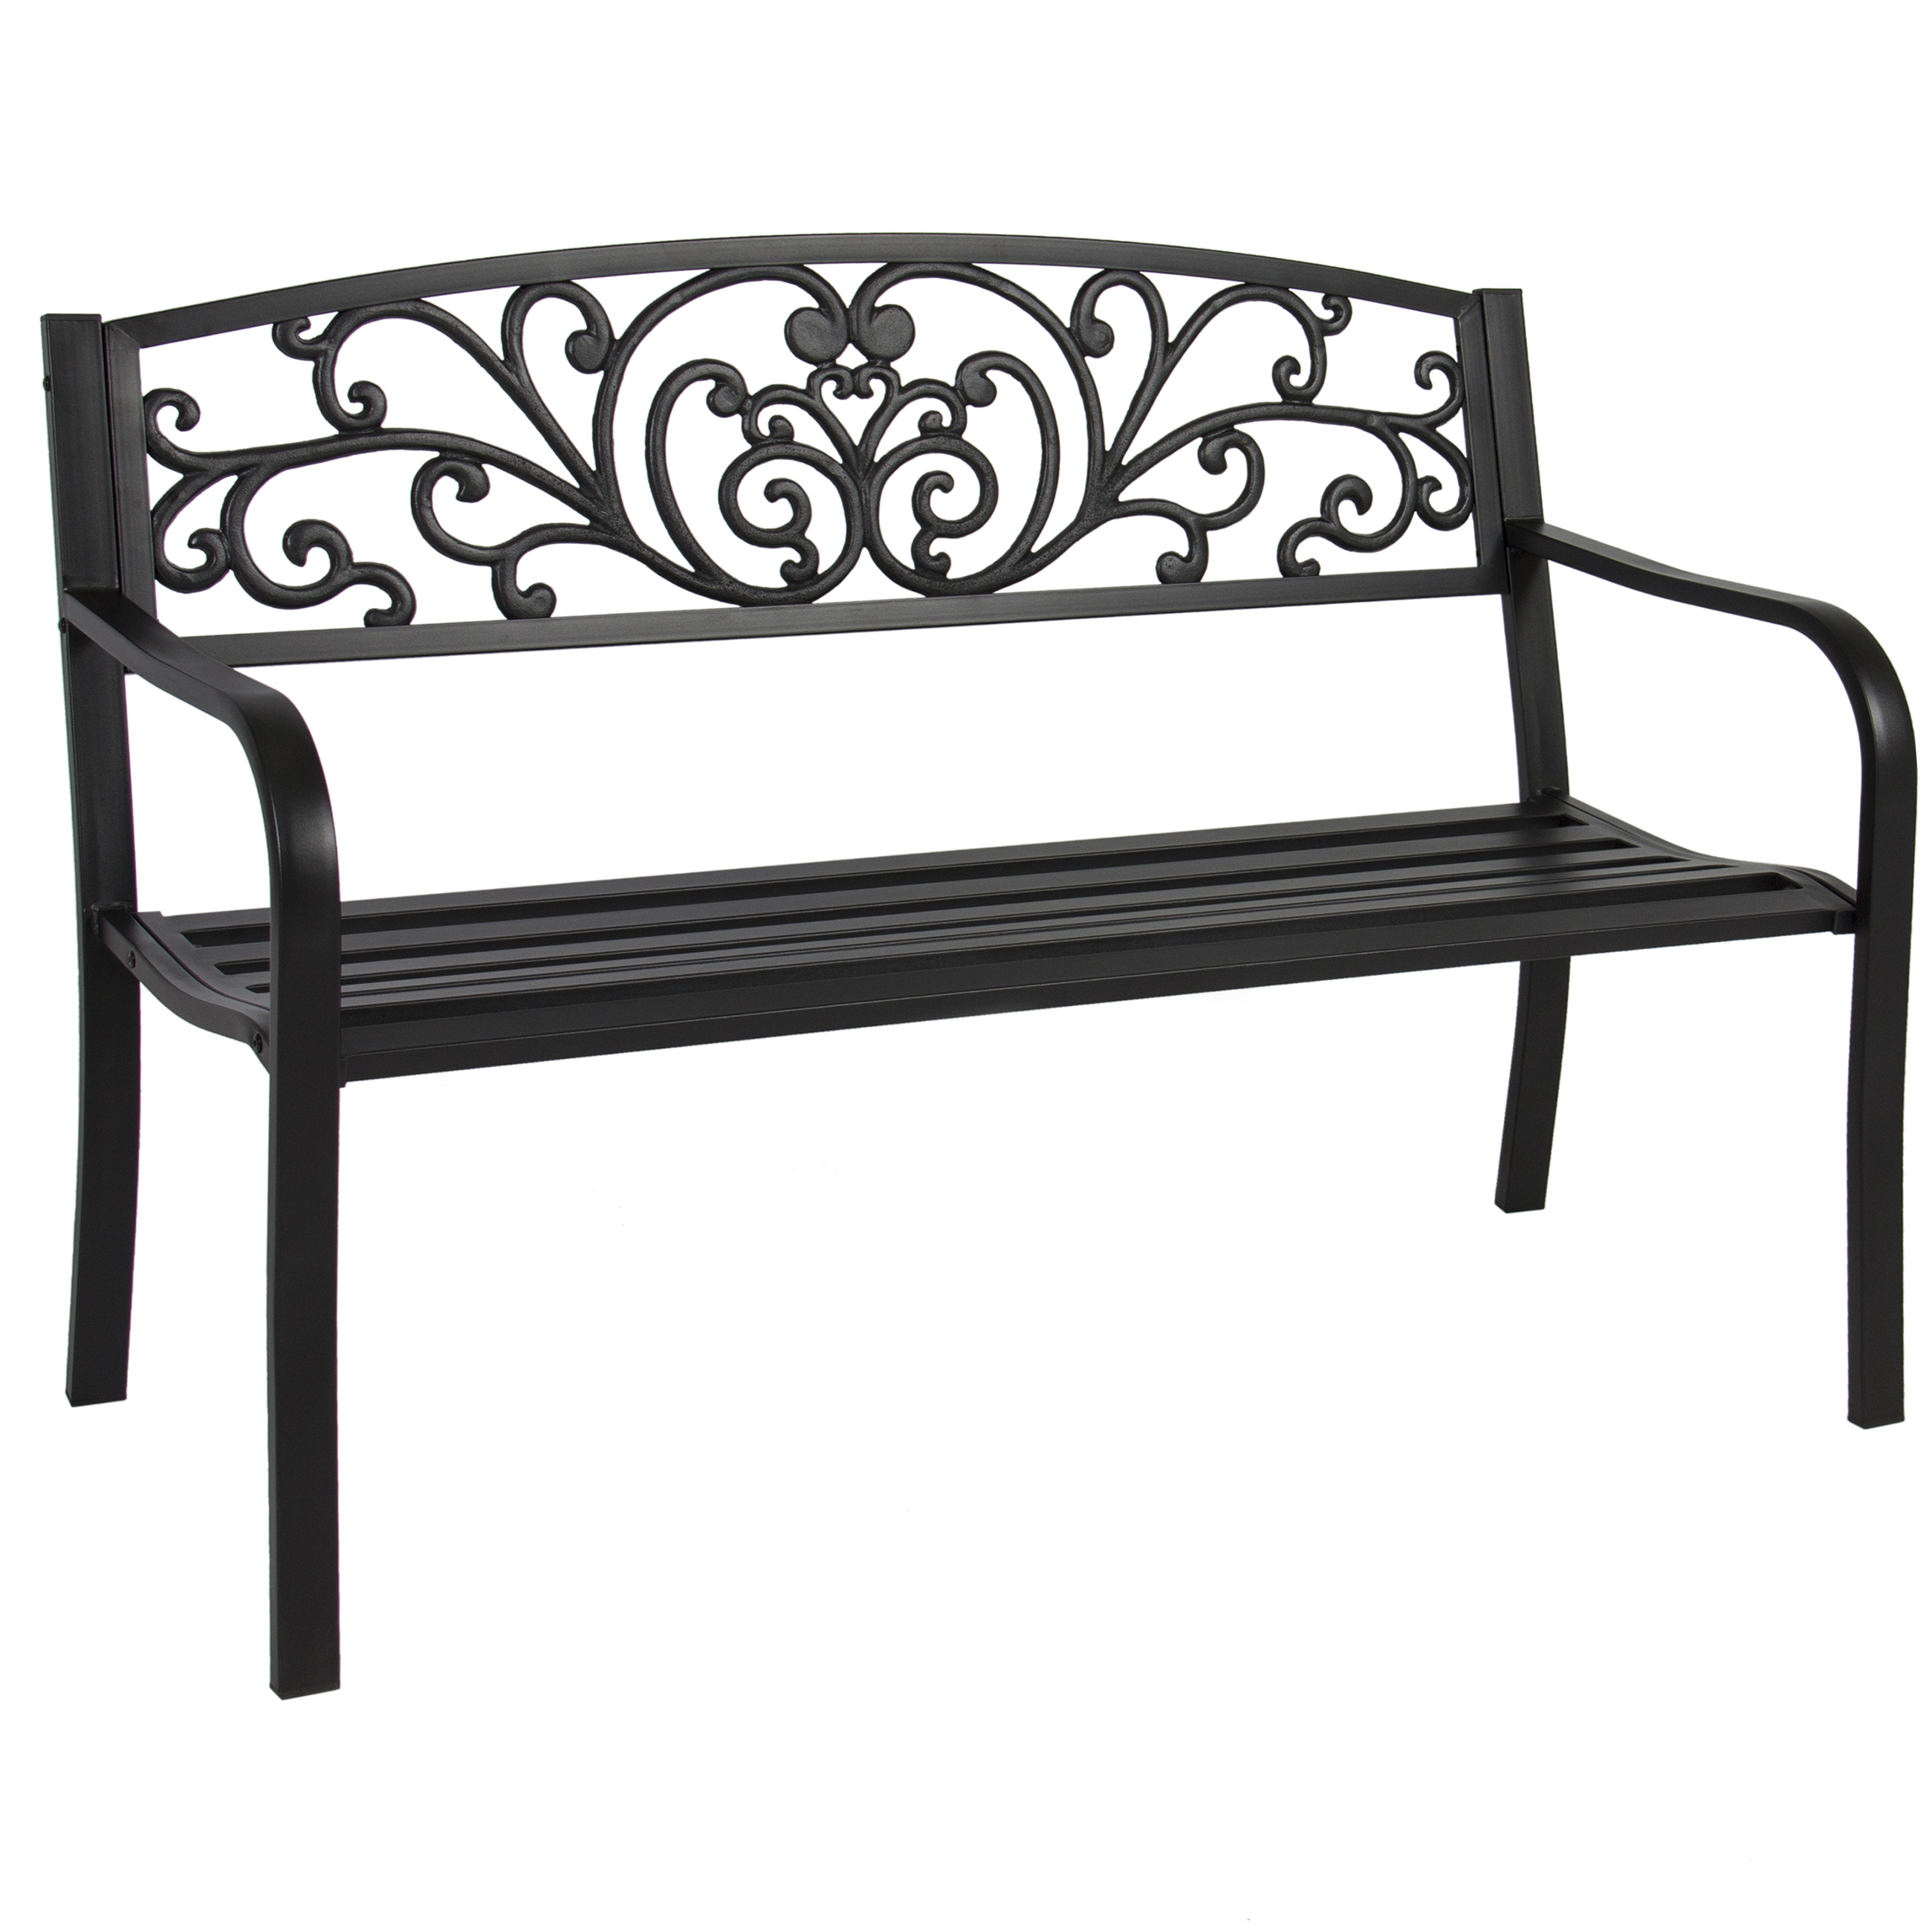 "Best Choice Products BCP 50"" Patio Garden Bench Park Yard Outdoor Furniture Steel Frame Porch Chair"